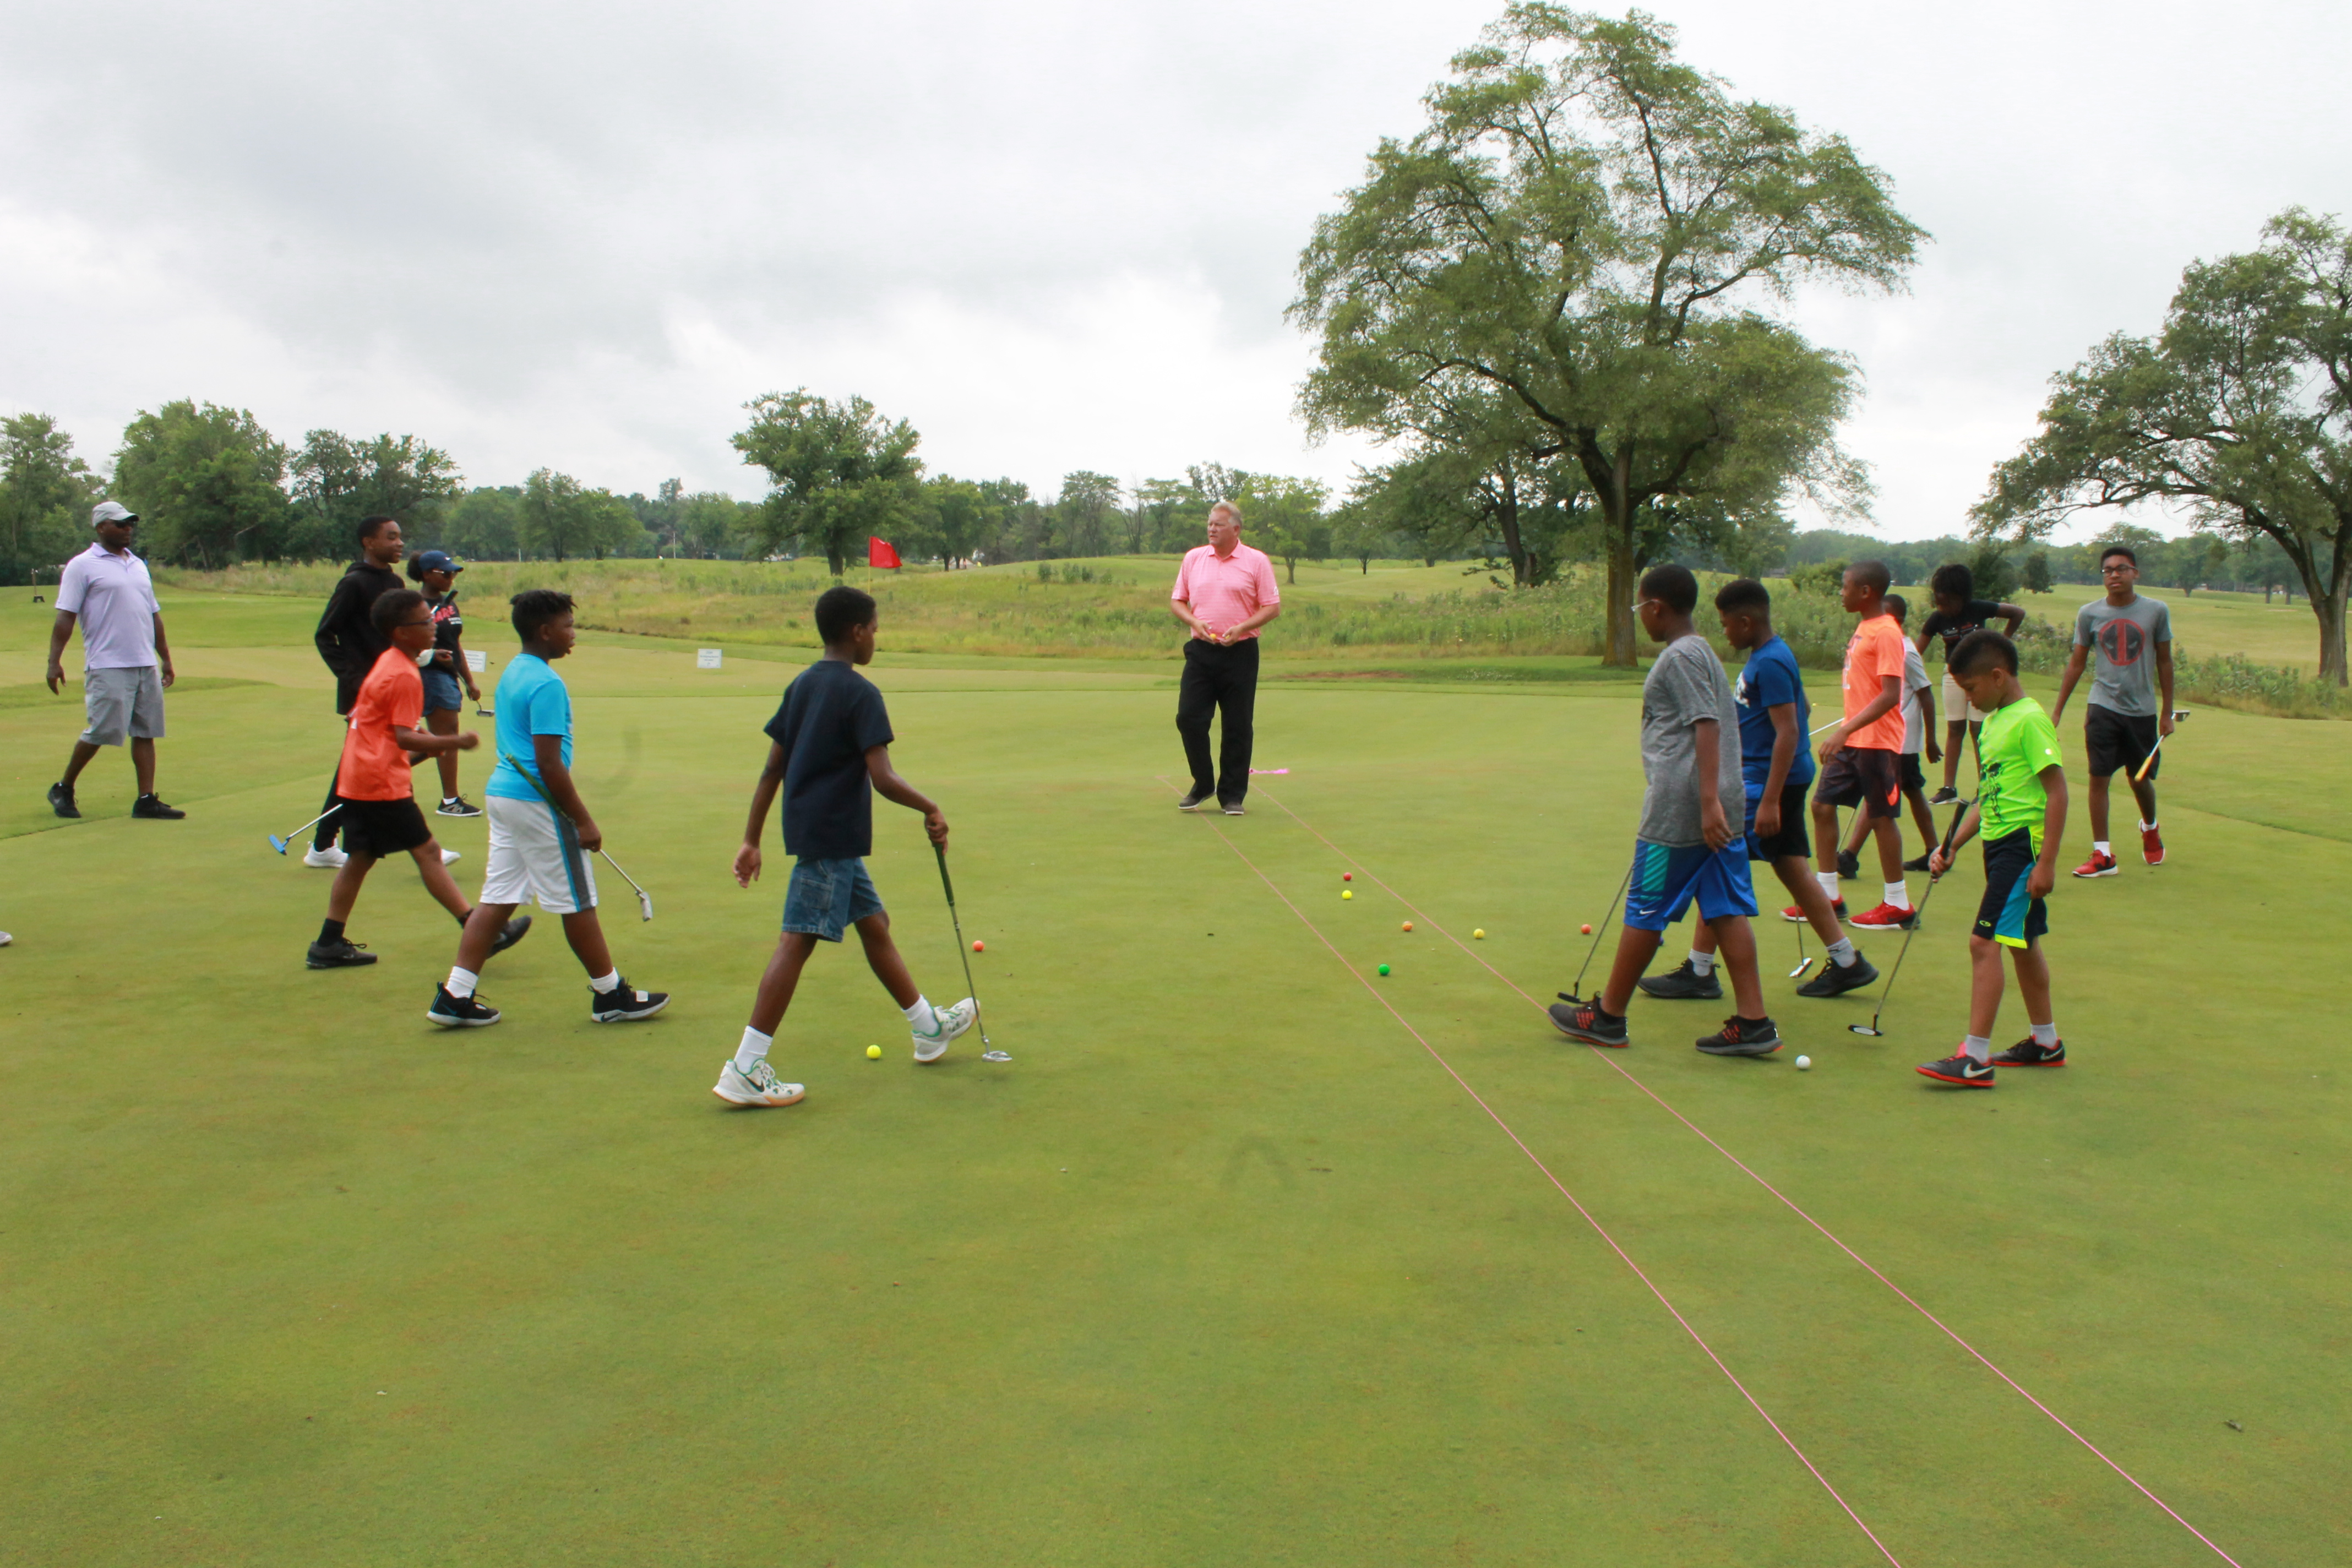 Jr. golfers gettting a lesson from Coyote Run's golf pro.